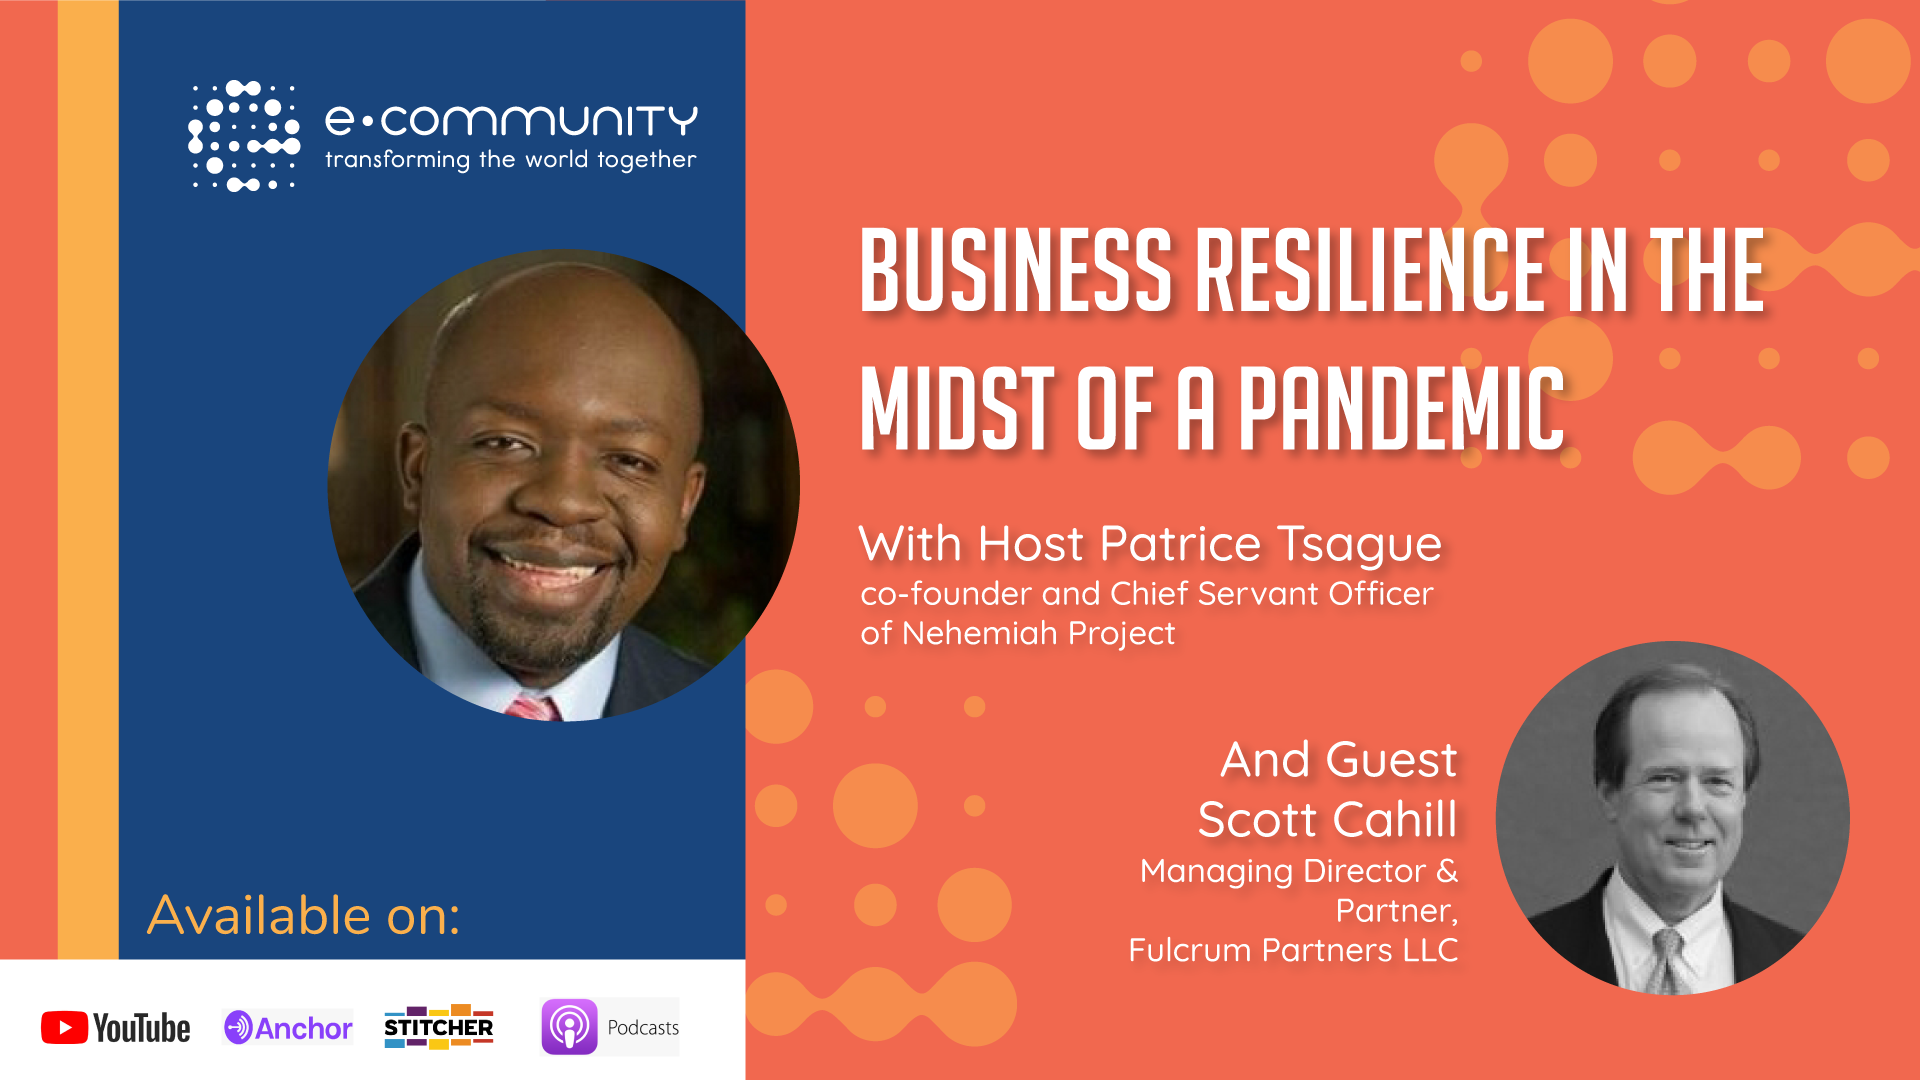 Business resilience in the midst of a Pandemic